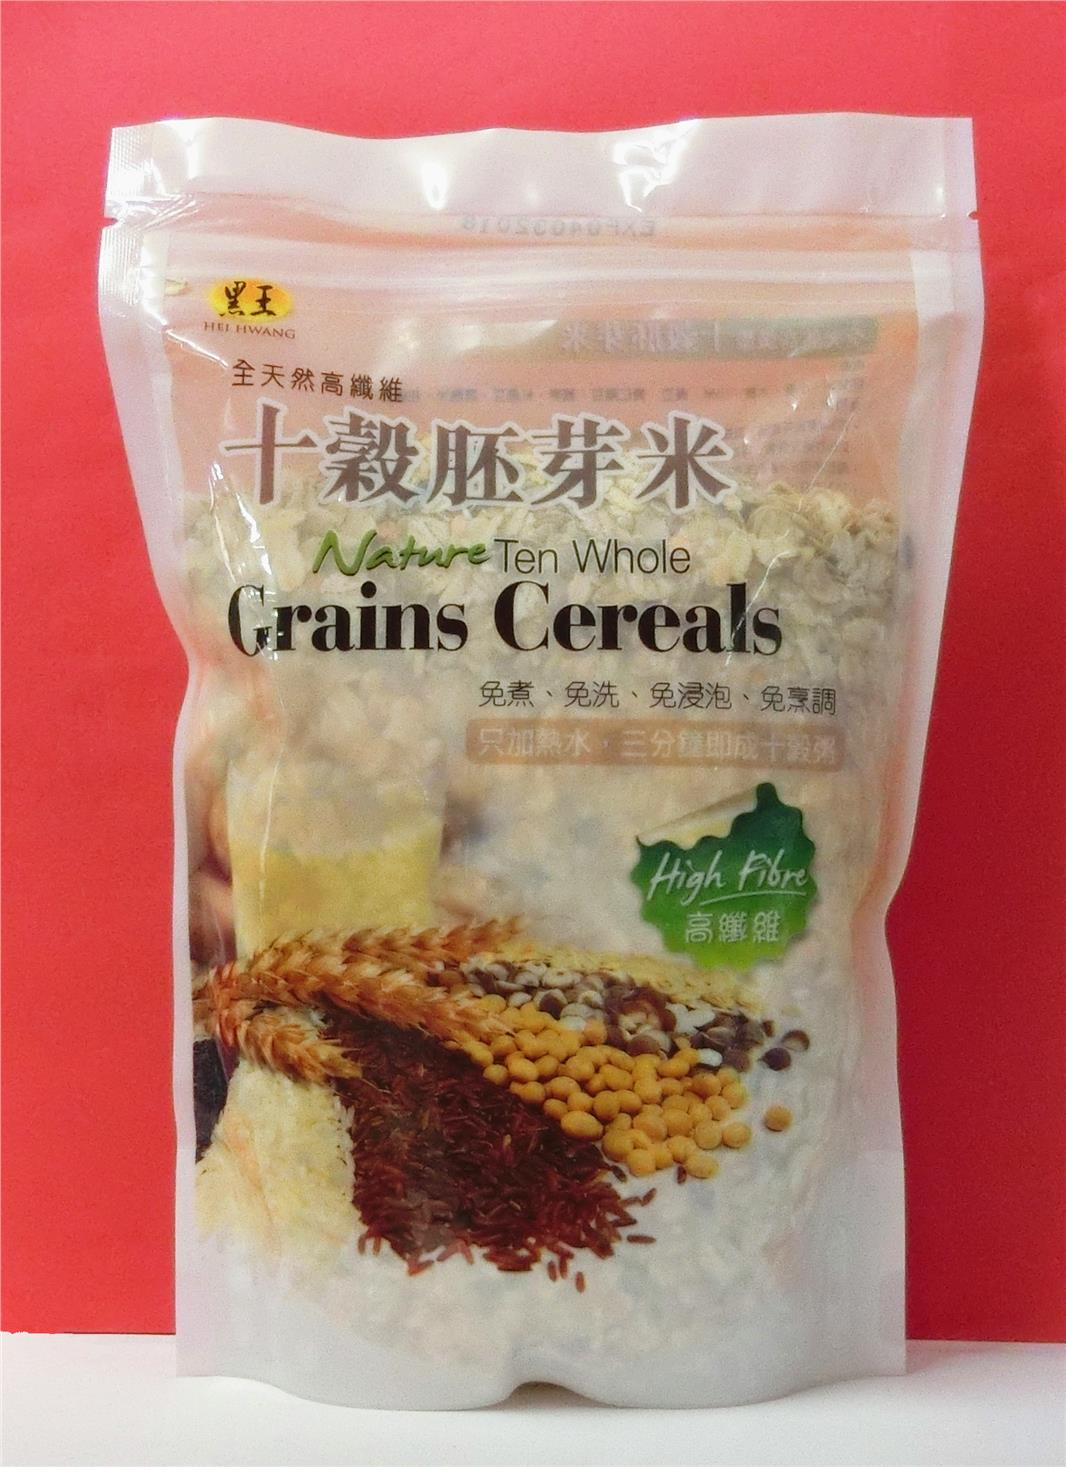 500g Hei Hwang Natural Ten Whole Grains Cereals, Limited stock only!